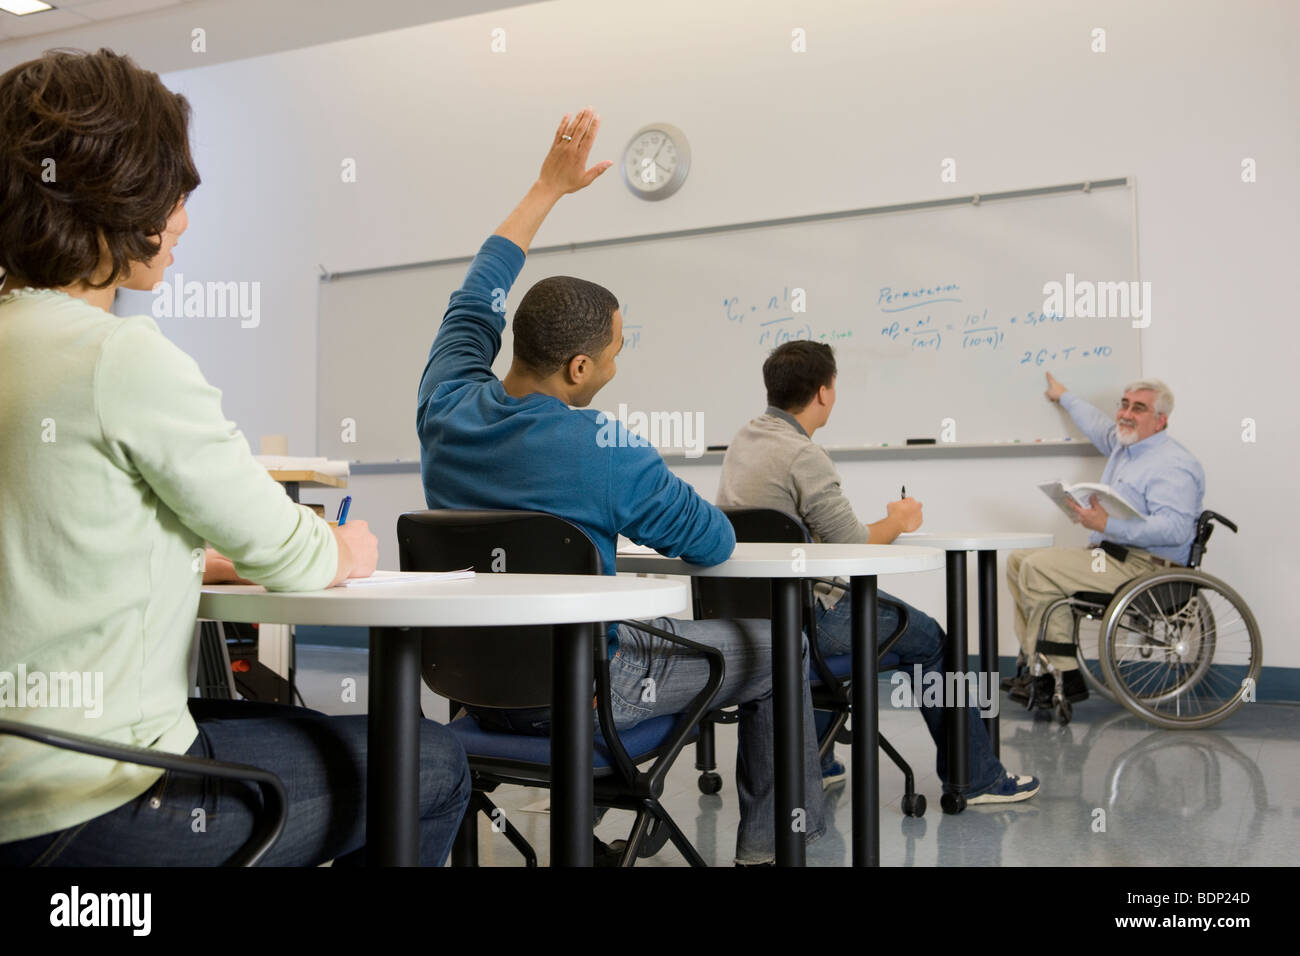 University professor teaching his students in a classroom - Stock Image